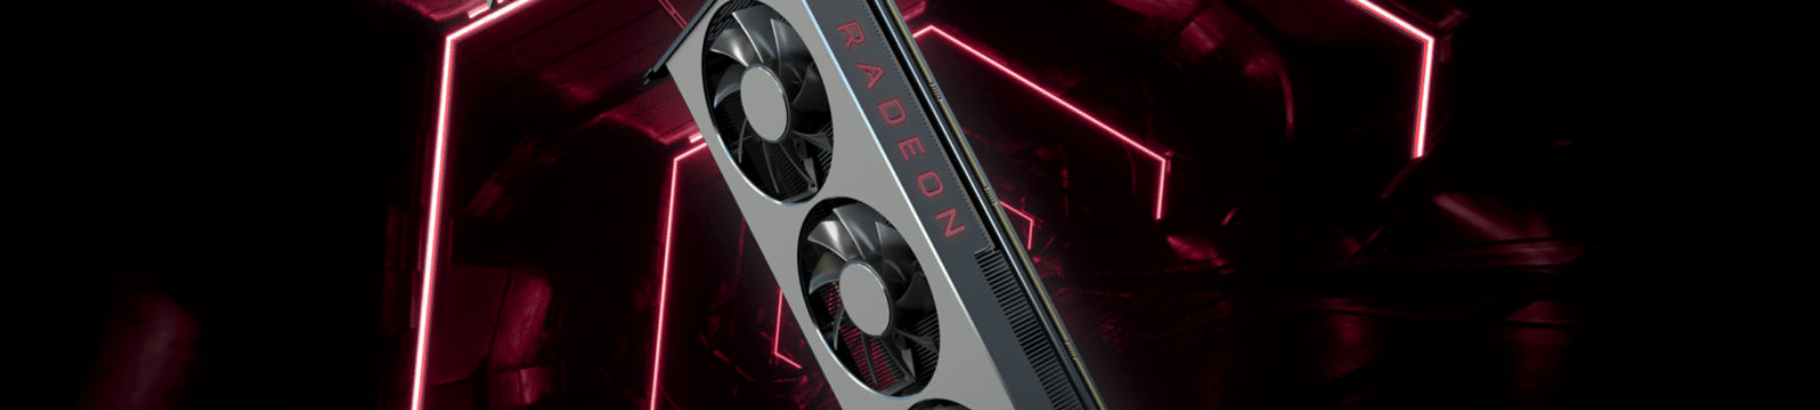 AMD Radeon Adrenalin 2019 19.2.2